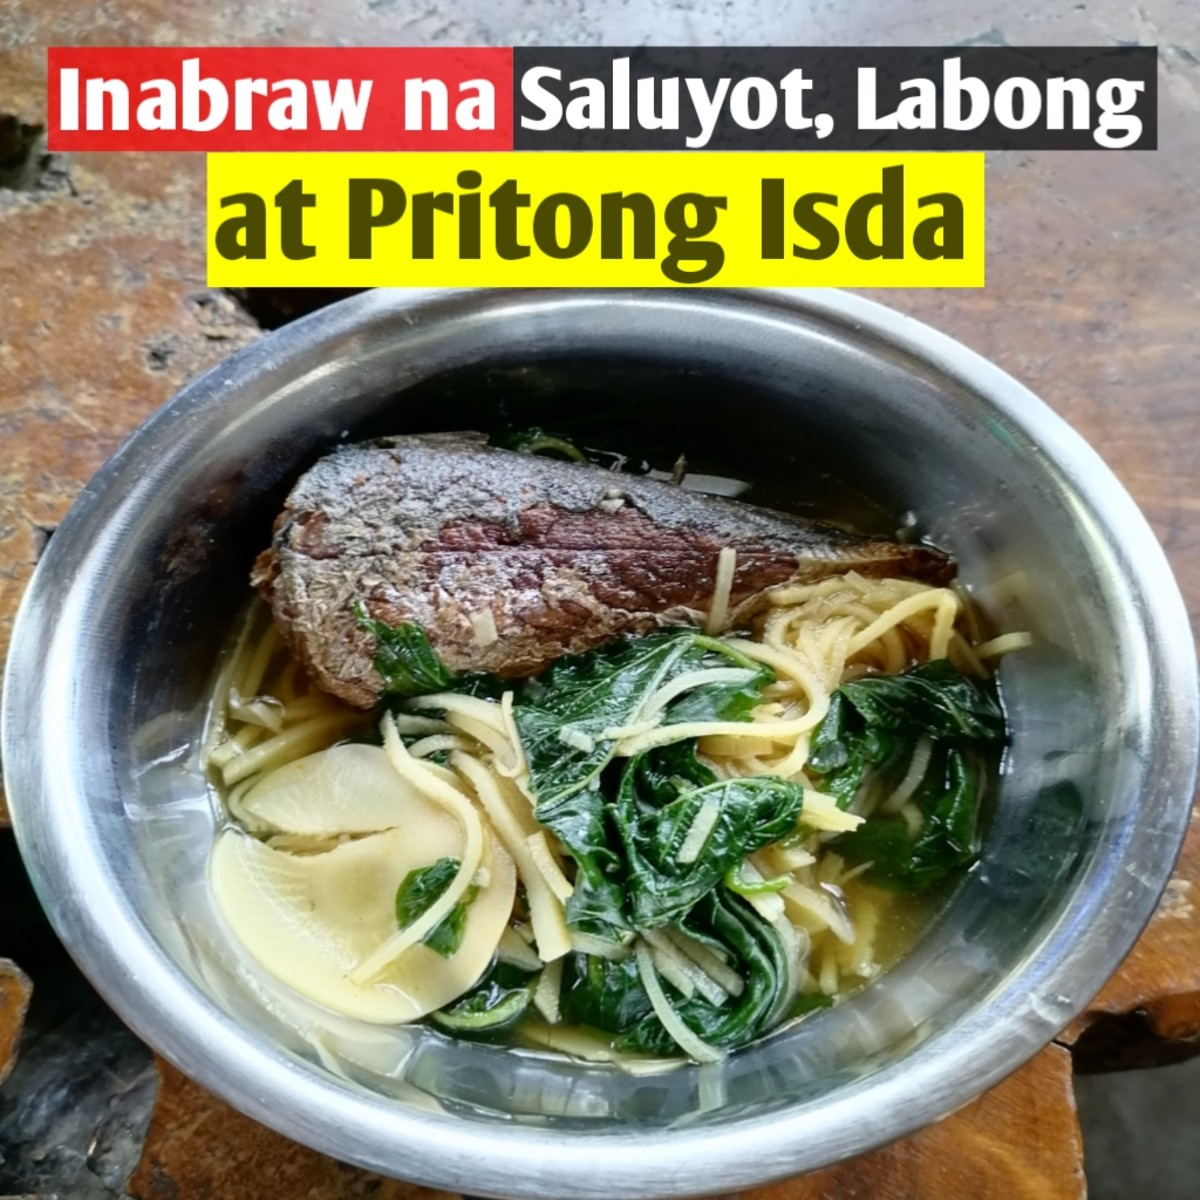 Inabraw na saluyot, labong at pritong isda is a Filipino vegetable stew with fried fish.